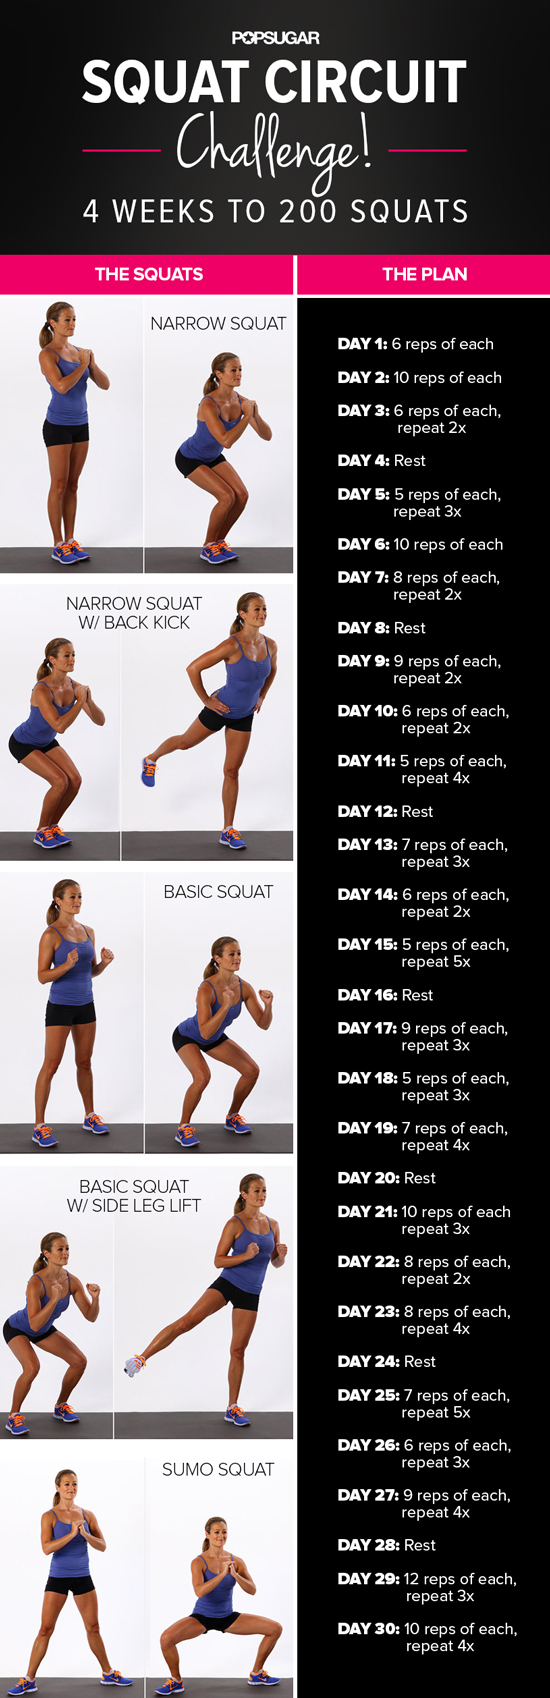 Print It, Do It: 30-Day Squat Challenge | POPSUGAR Fitness UK